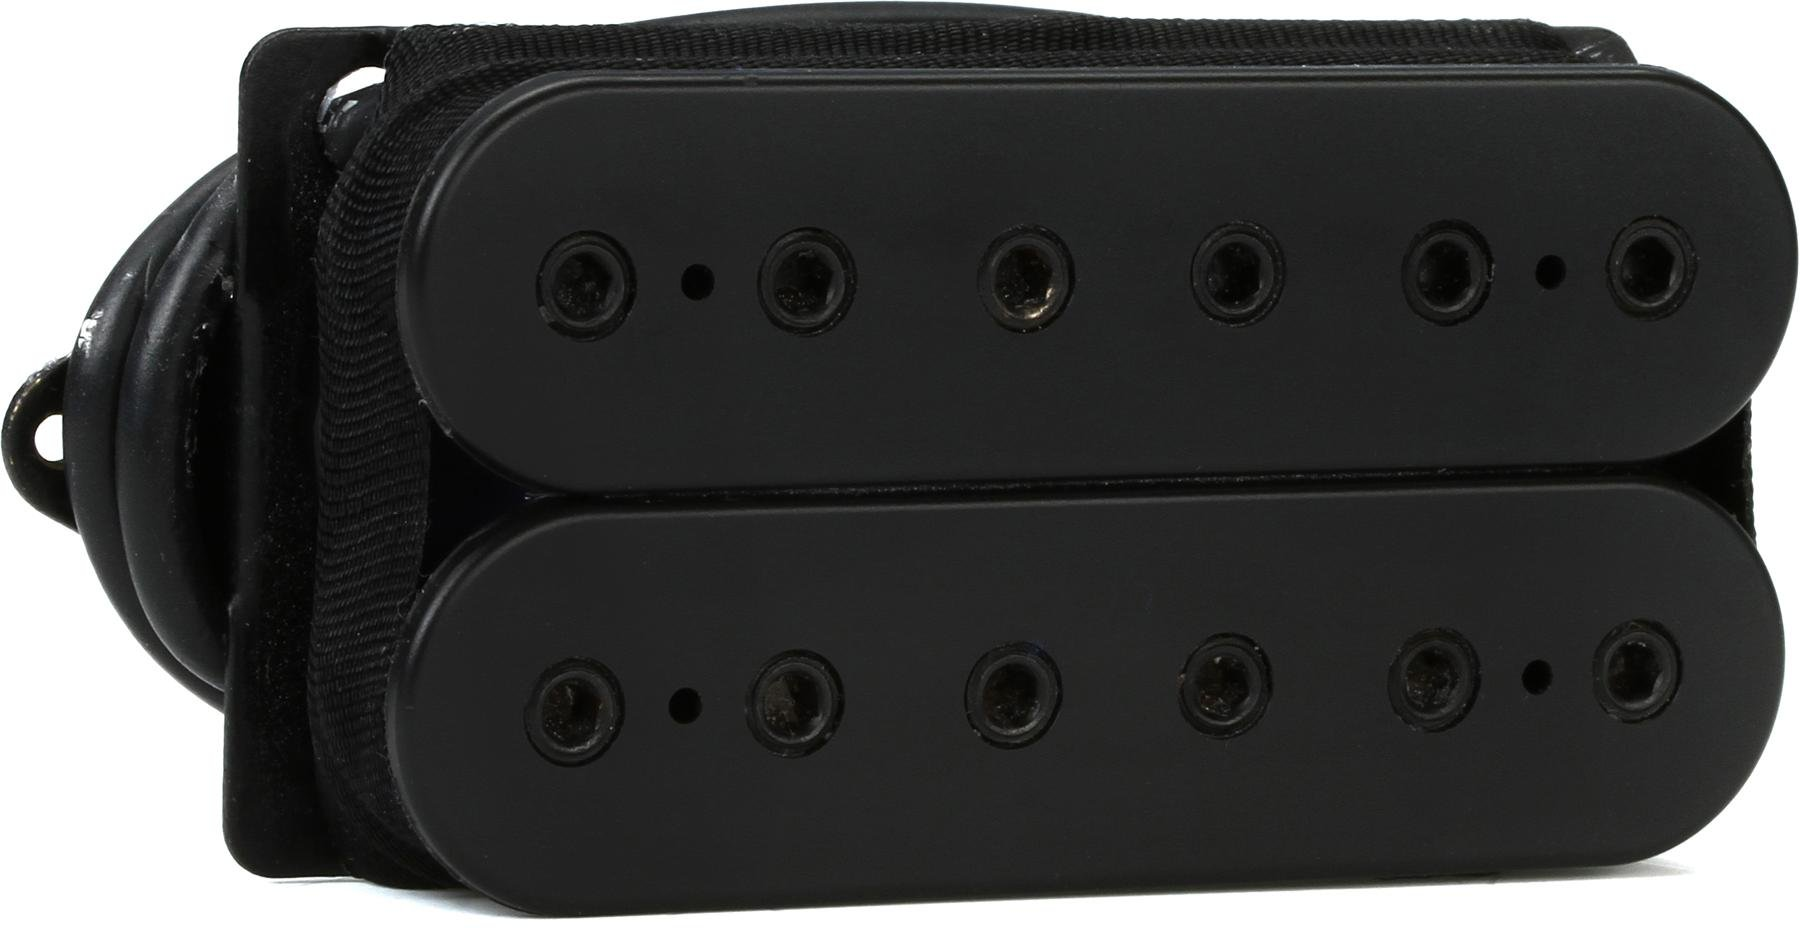 Comfortable Two Humbuckers 5 Way Switch Tall Hh 5 Way Switch Wiring Clean Gretsch Wiring Harness Solar Panel Diagram Old Solar Panel Wiring Guide FreshSolar Panel Diagrams DiMarzio Evolution Bridge Humbucker Pickup   F Spaced Black ..